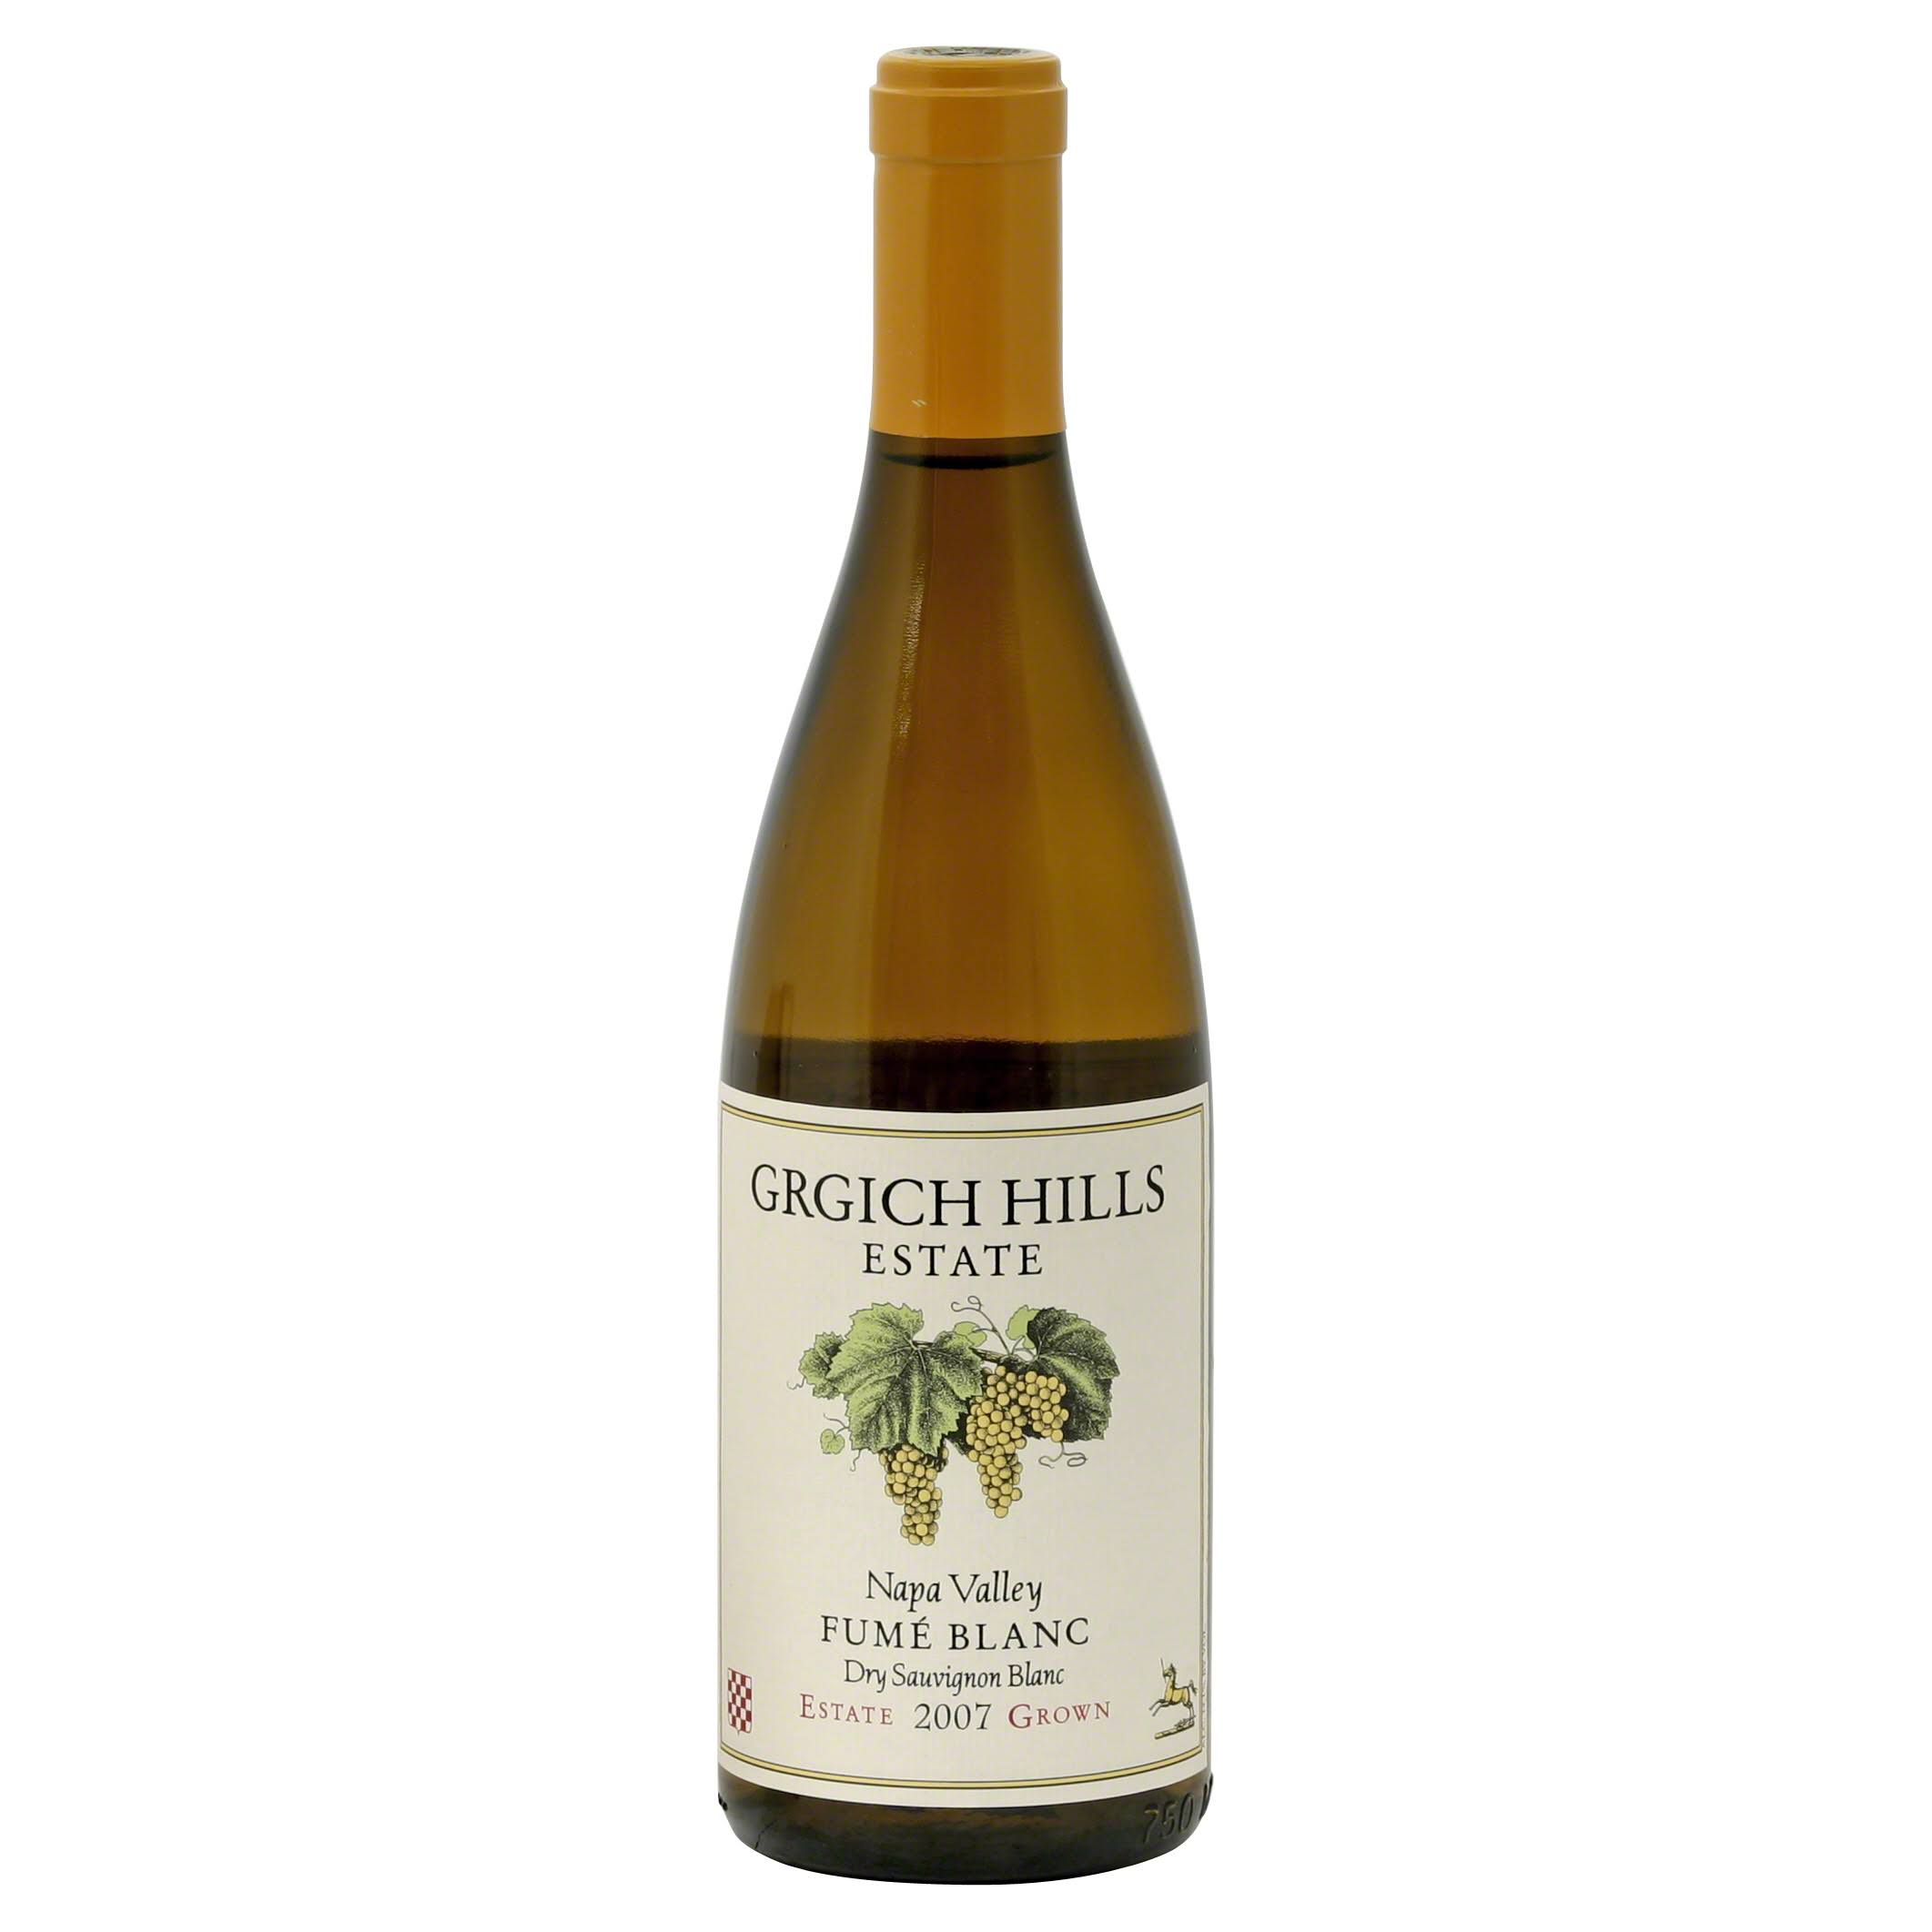 Grgich Hills Estate Fume Blanc Wine - Napa Valley, USA